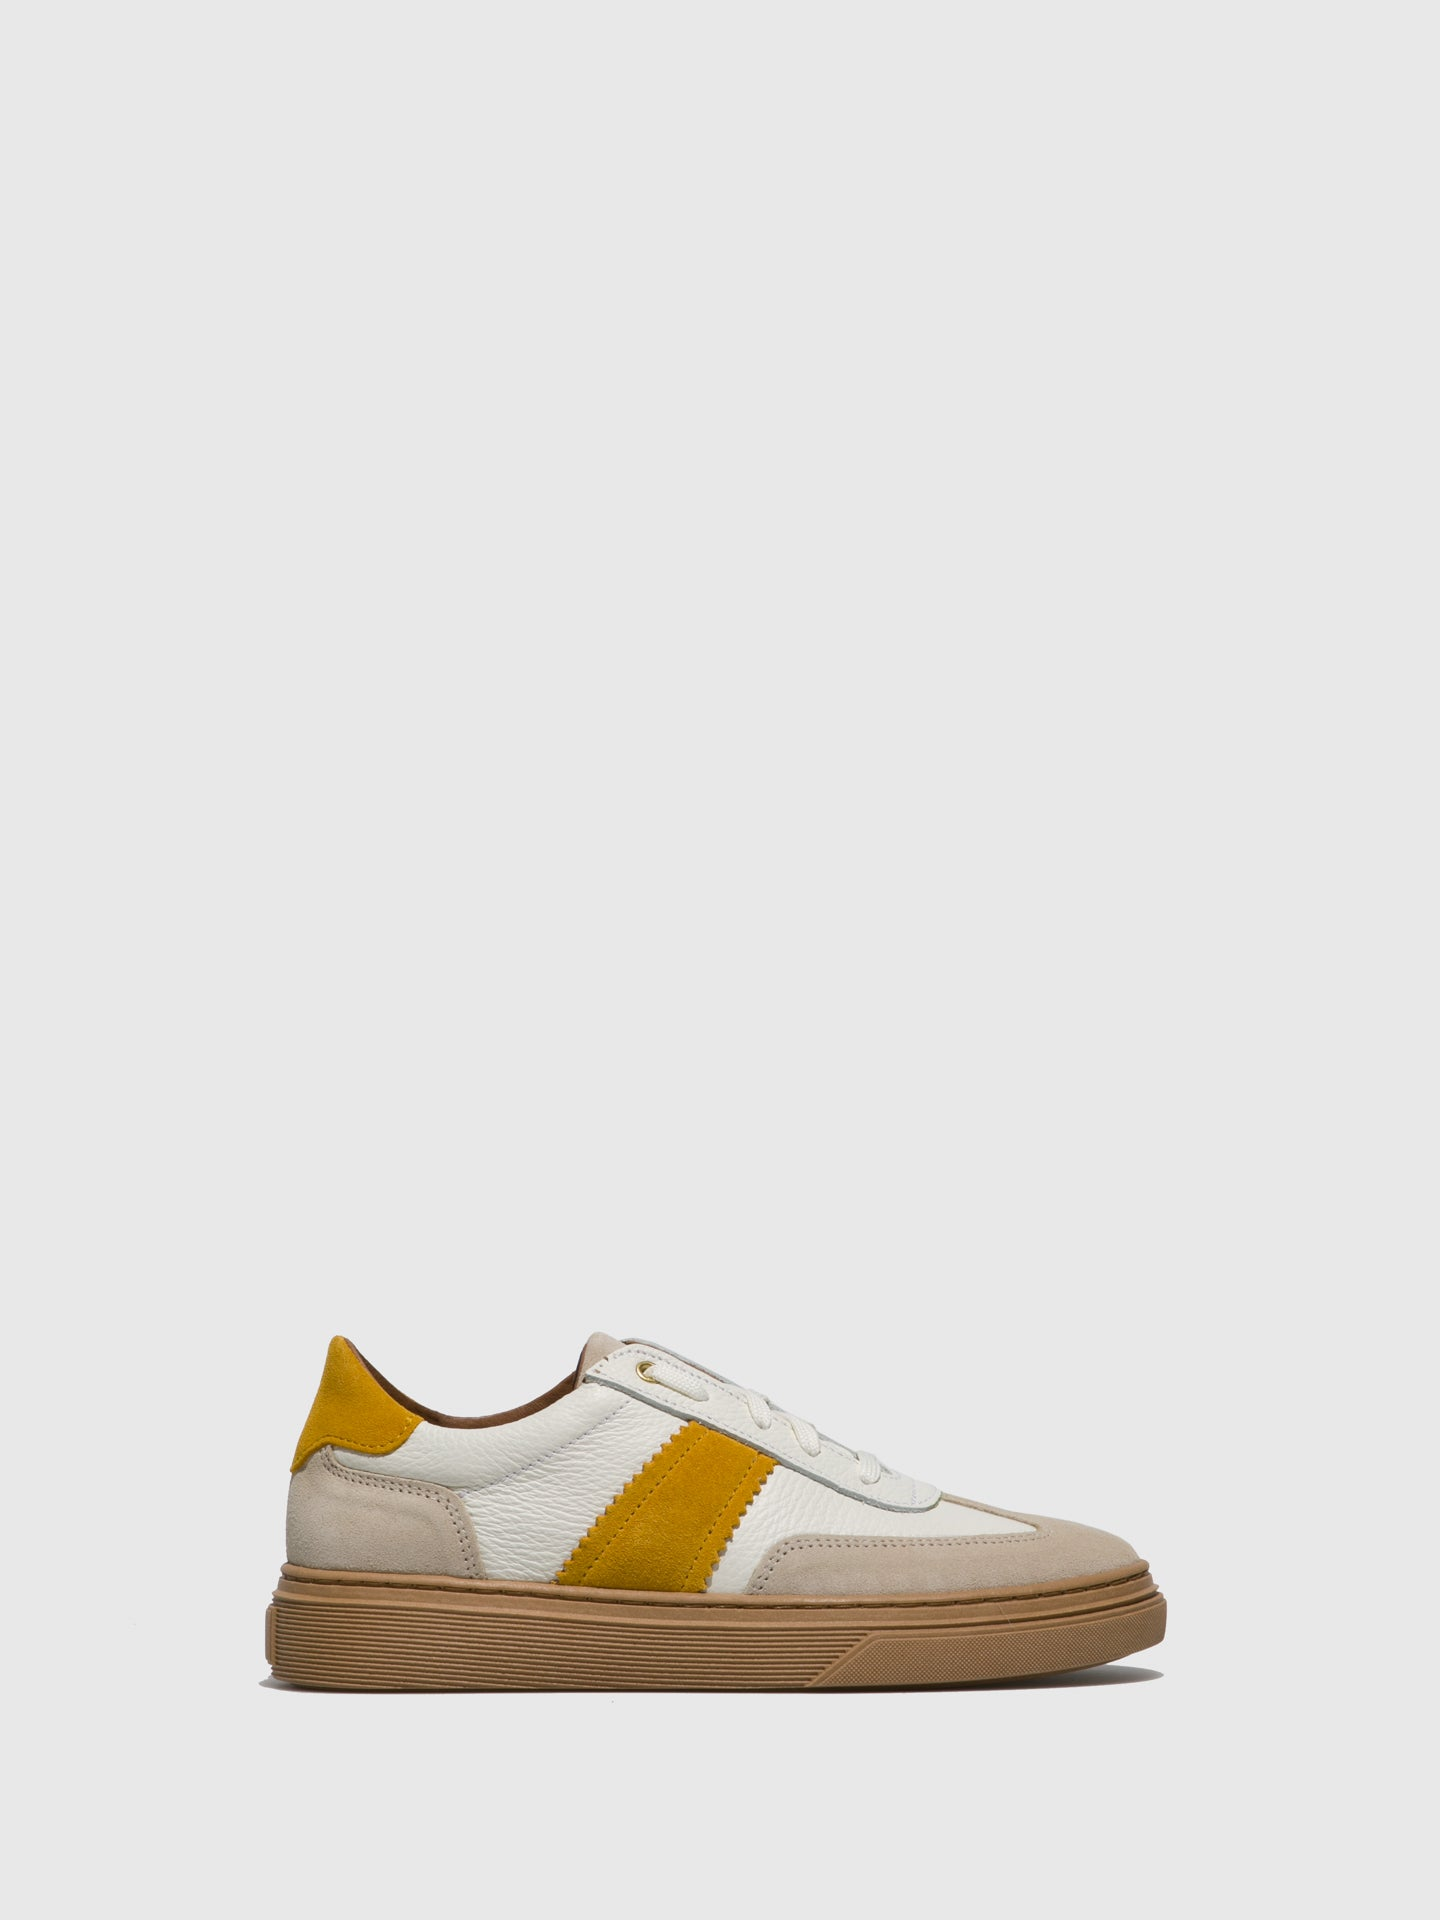 Fungi Yellow White Lace-up Trainers